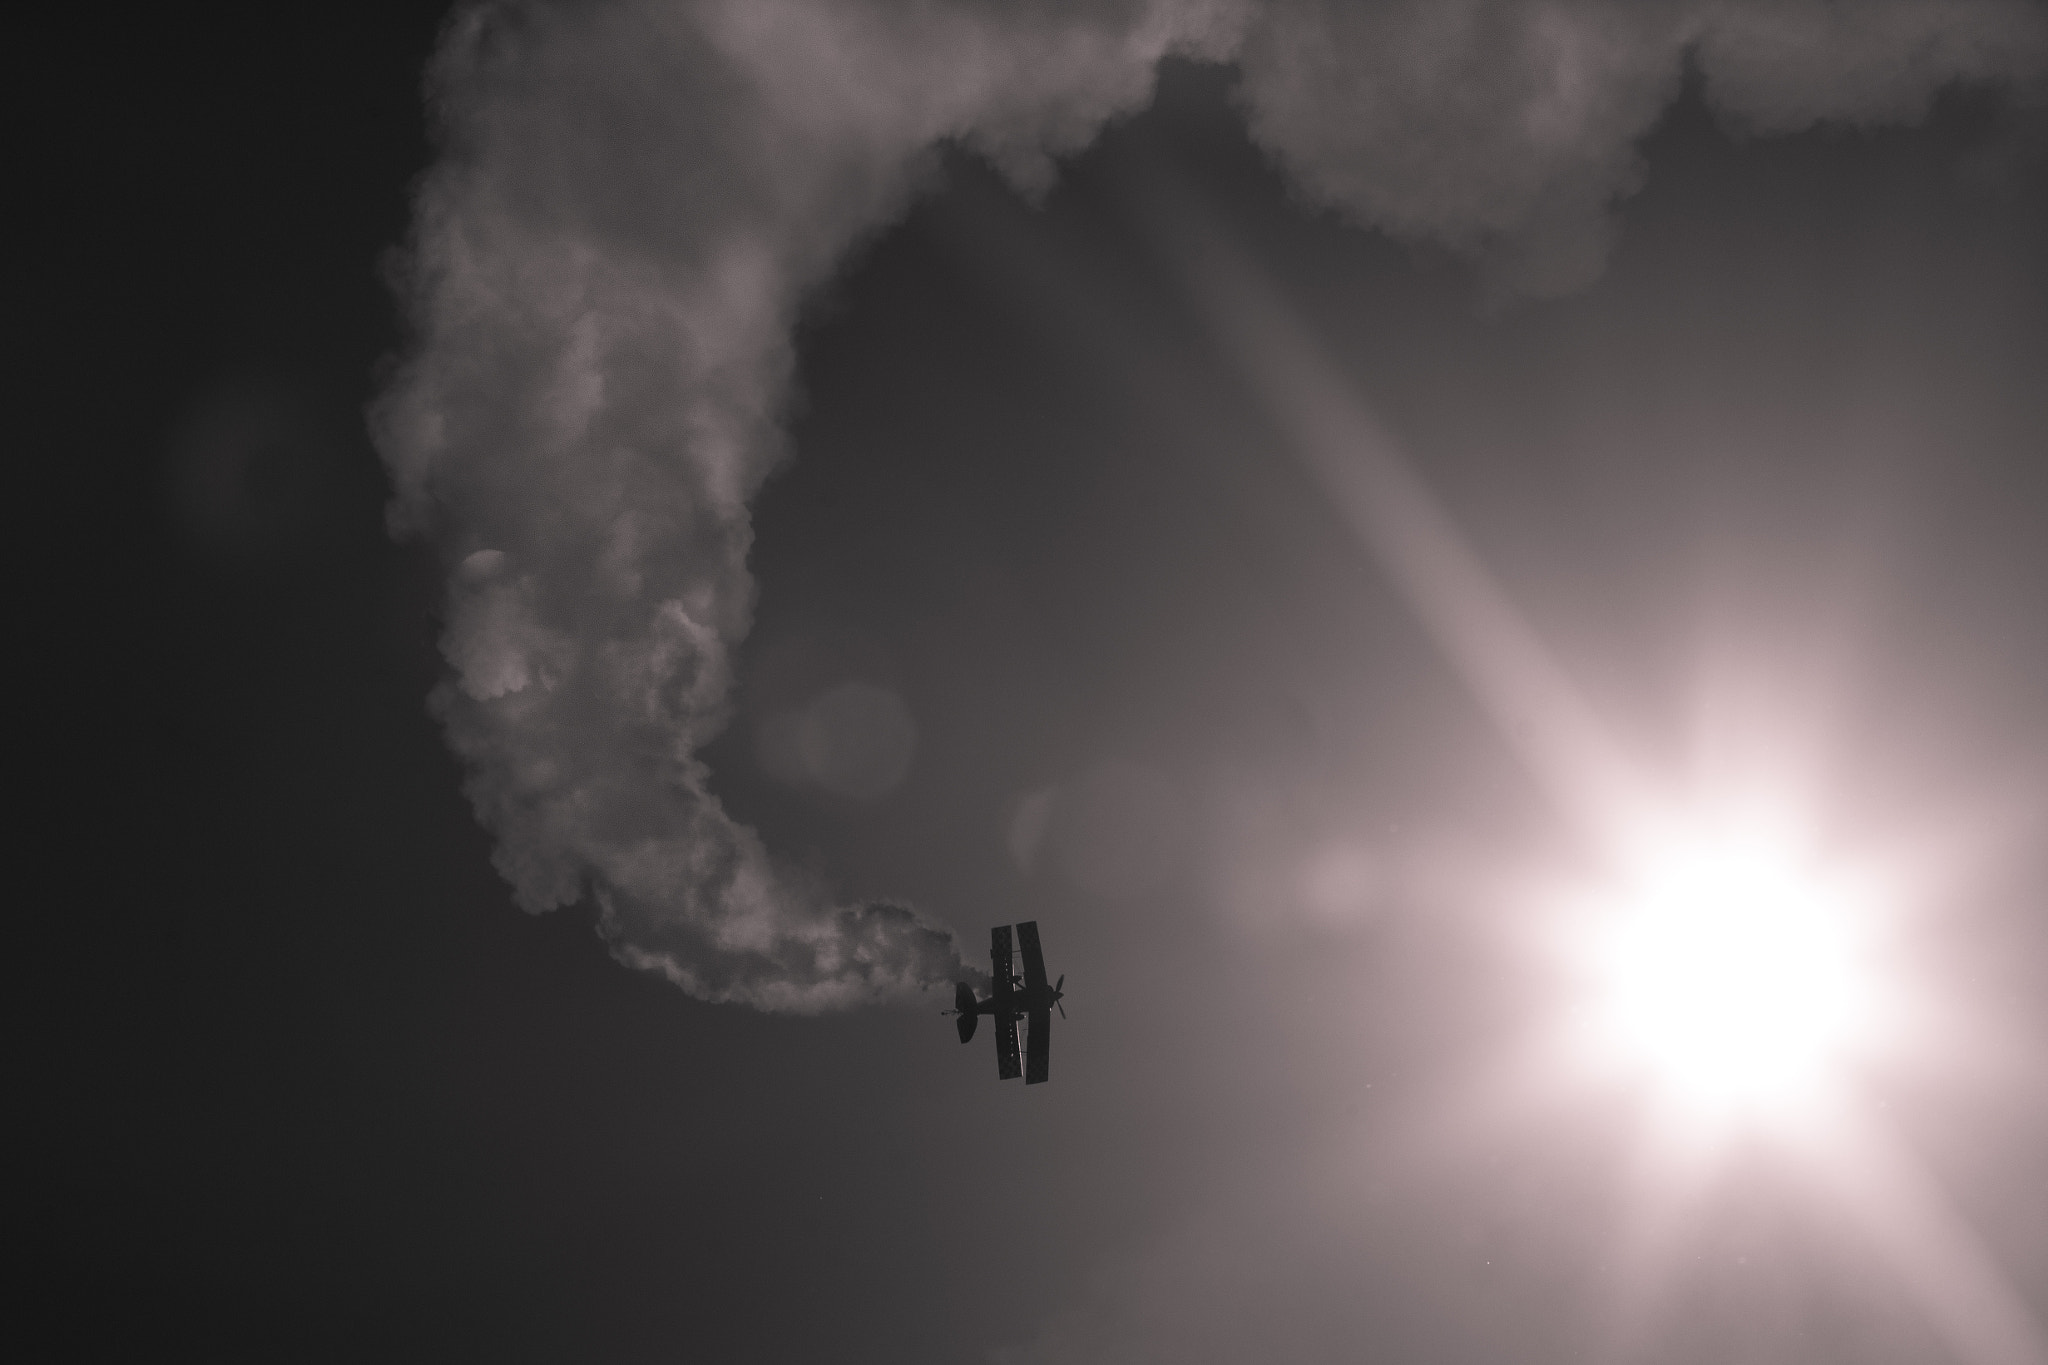 Photograph Aerobatics by Shannon Ley on 500px